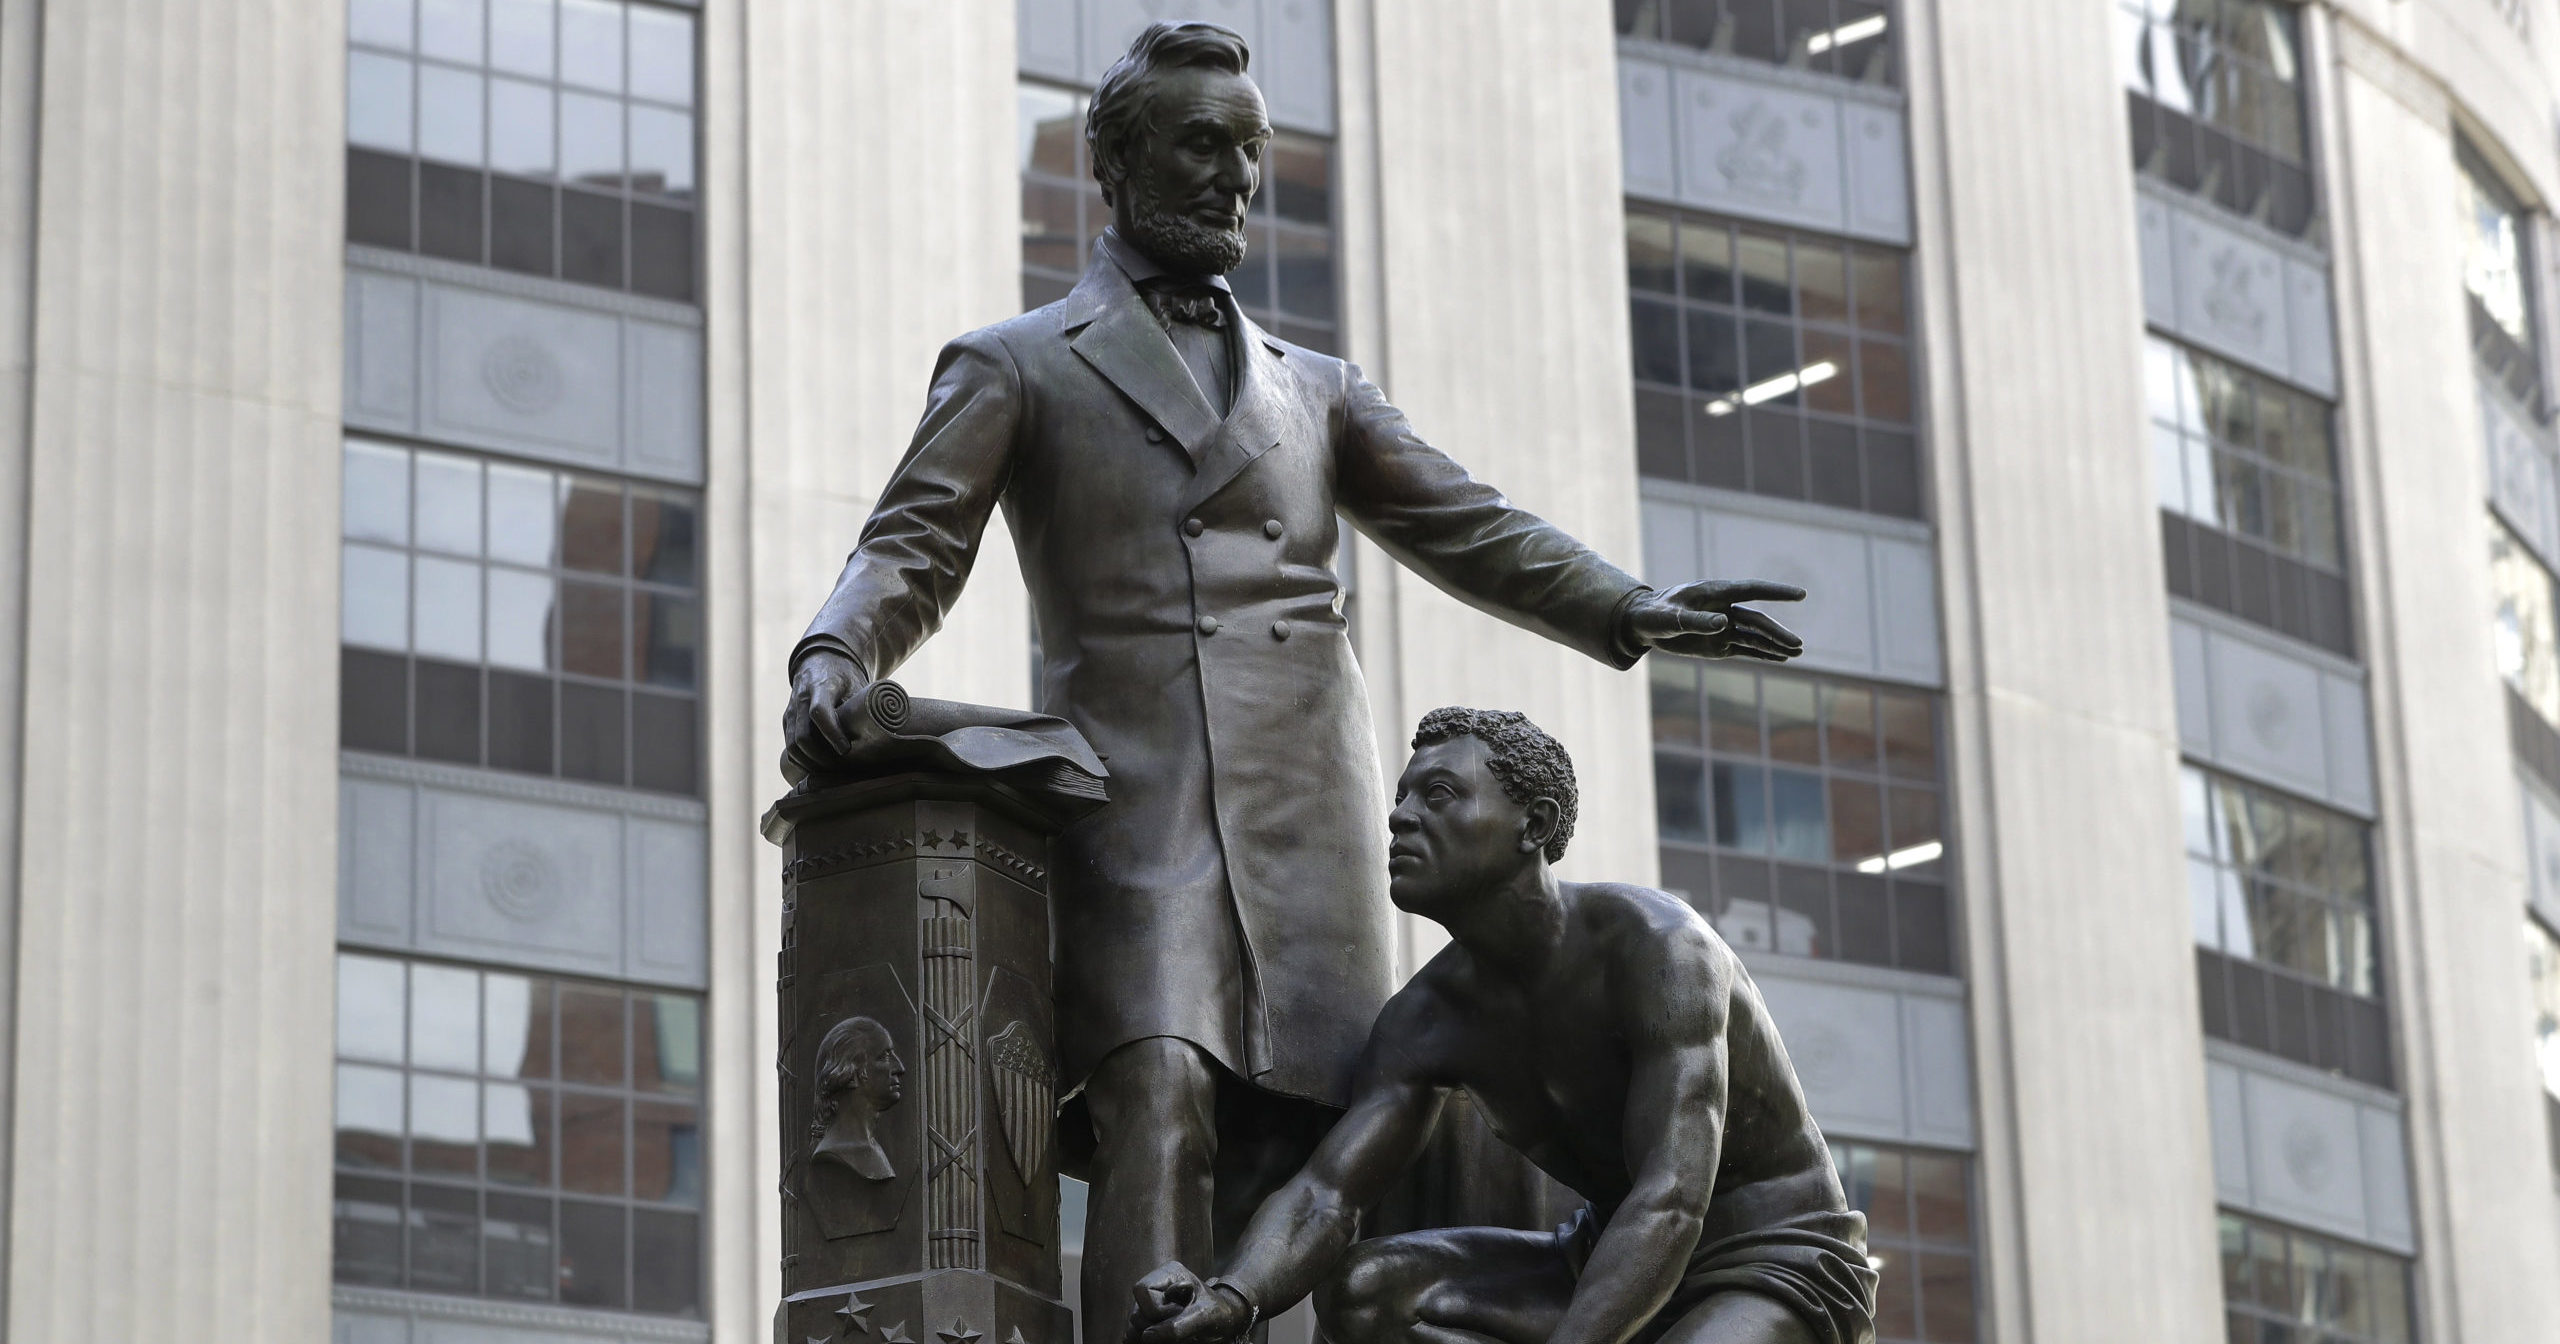 A statue depicting a freed slave kneeling at President Abraham Lincoln's feet is seen in Boston on June 25, 2020.